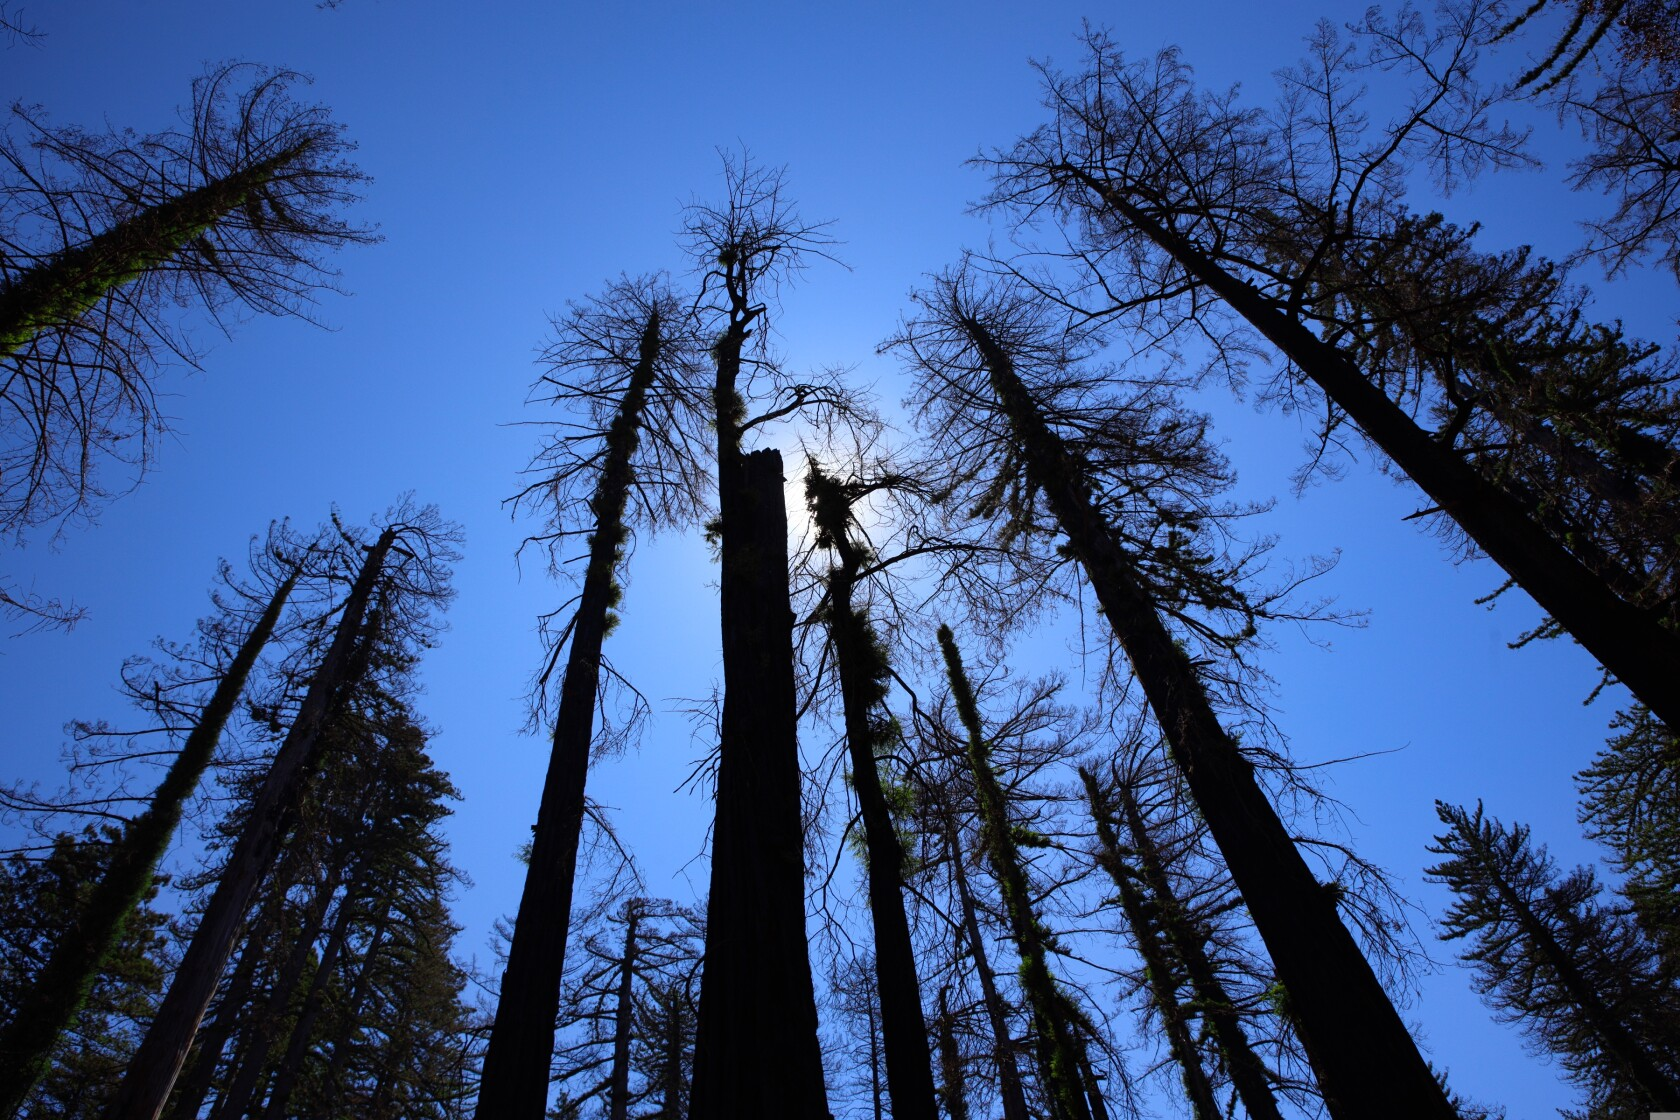 Inside Big Basin State Park on Tuesday, August 10.